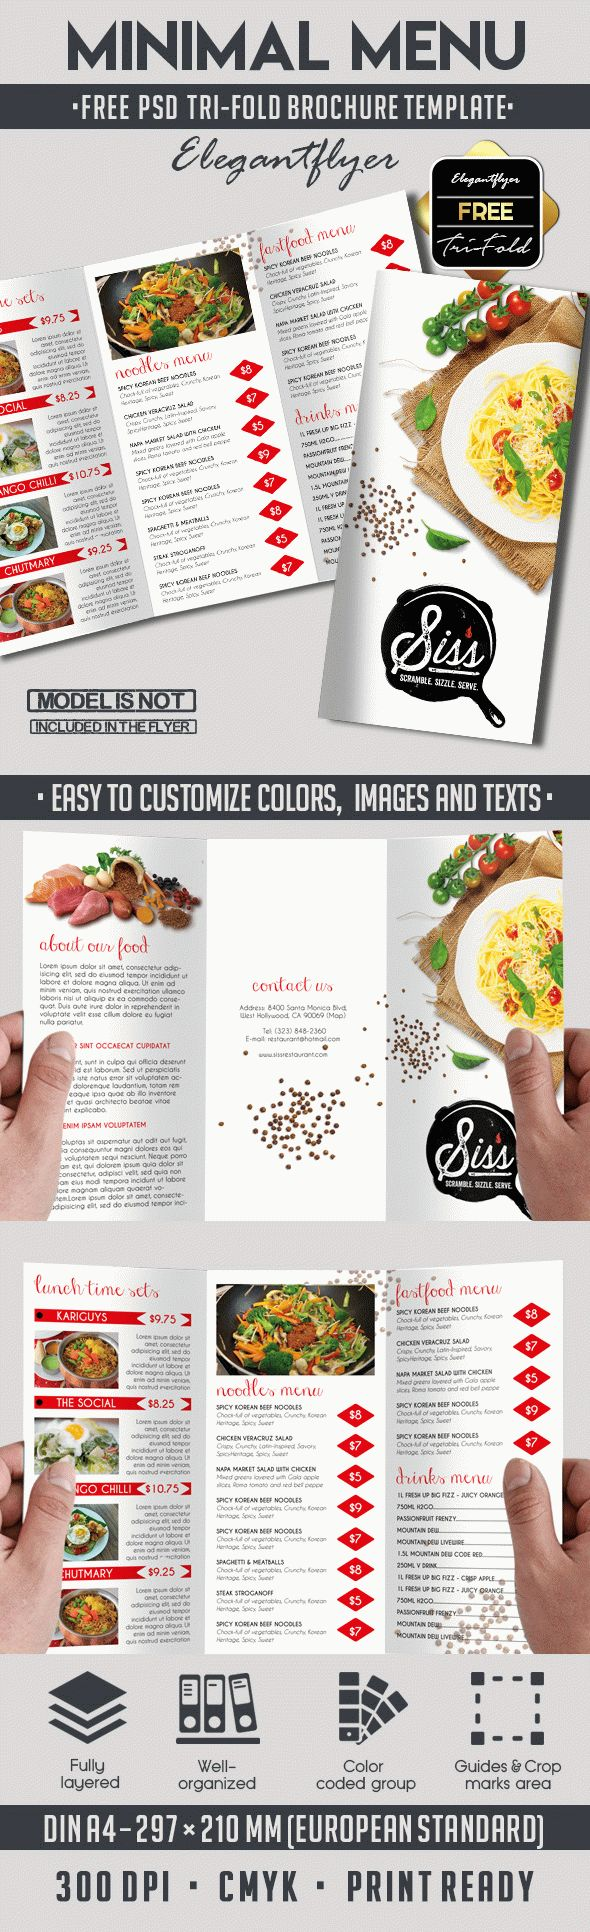 Free PSD Brochure for Minimal Menu